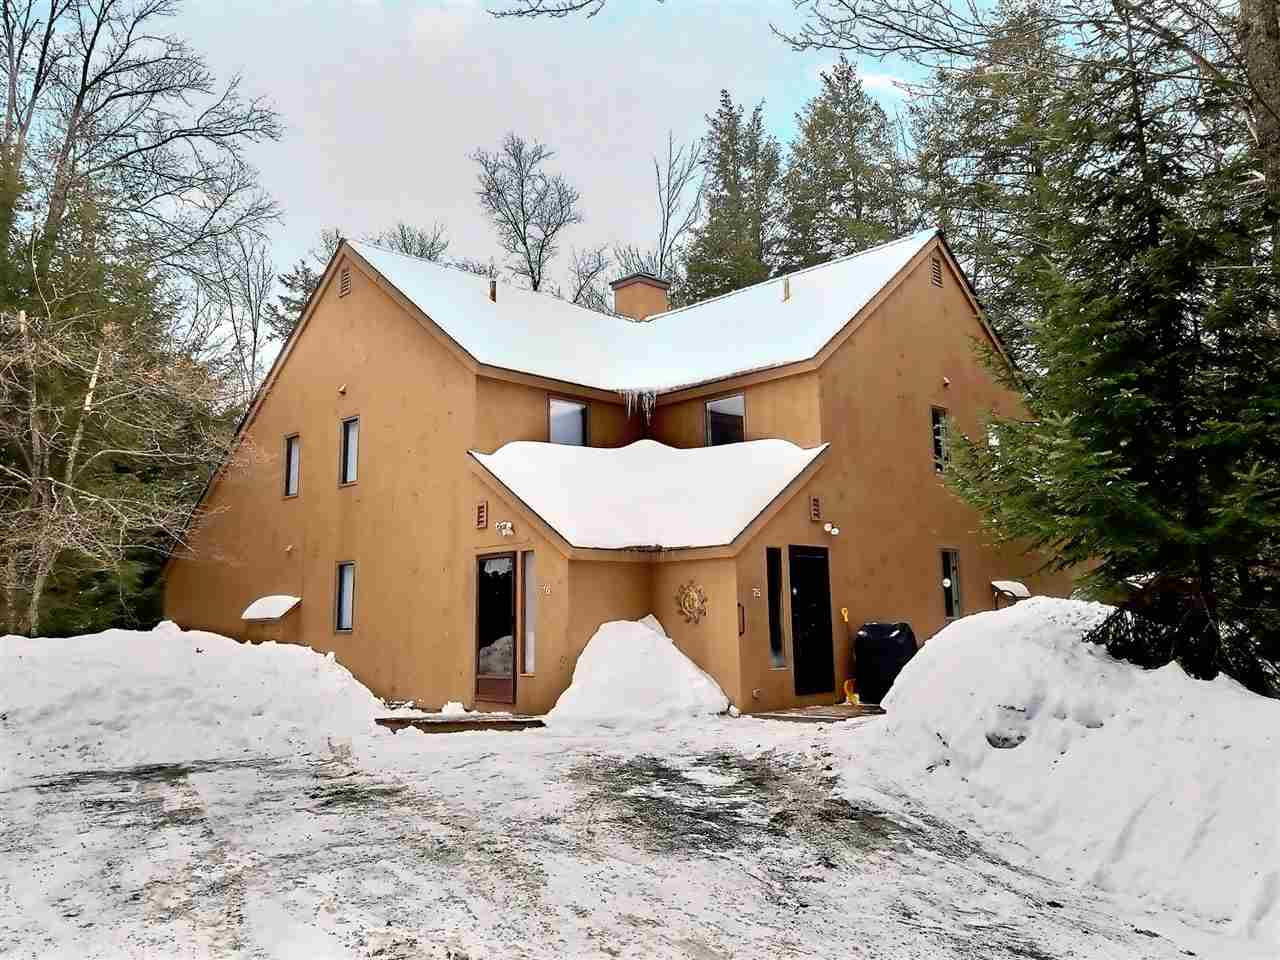 Village of Eastman in Town of Grantham NH  03753 Condo for sale $List Price is $199,000